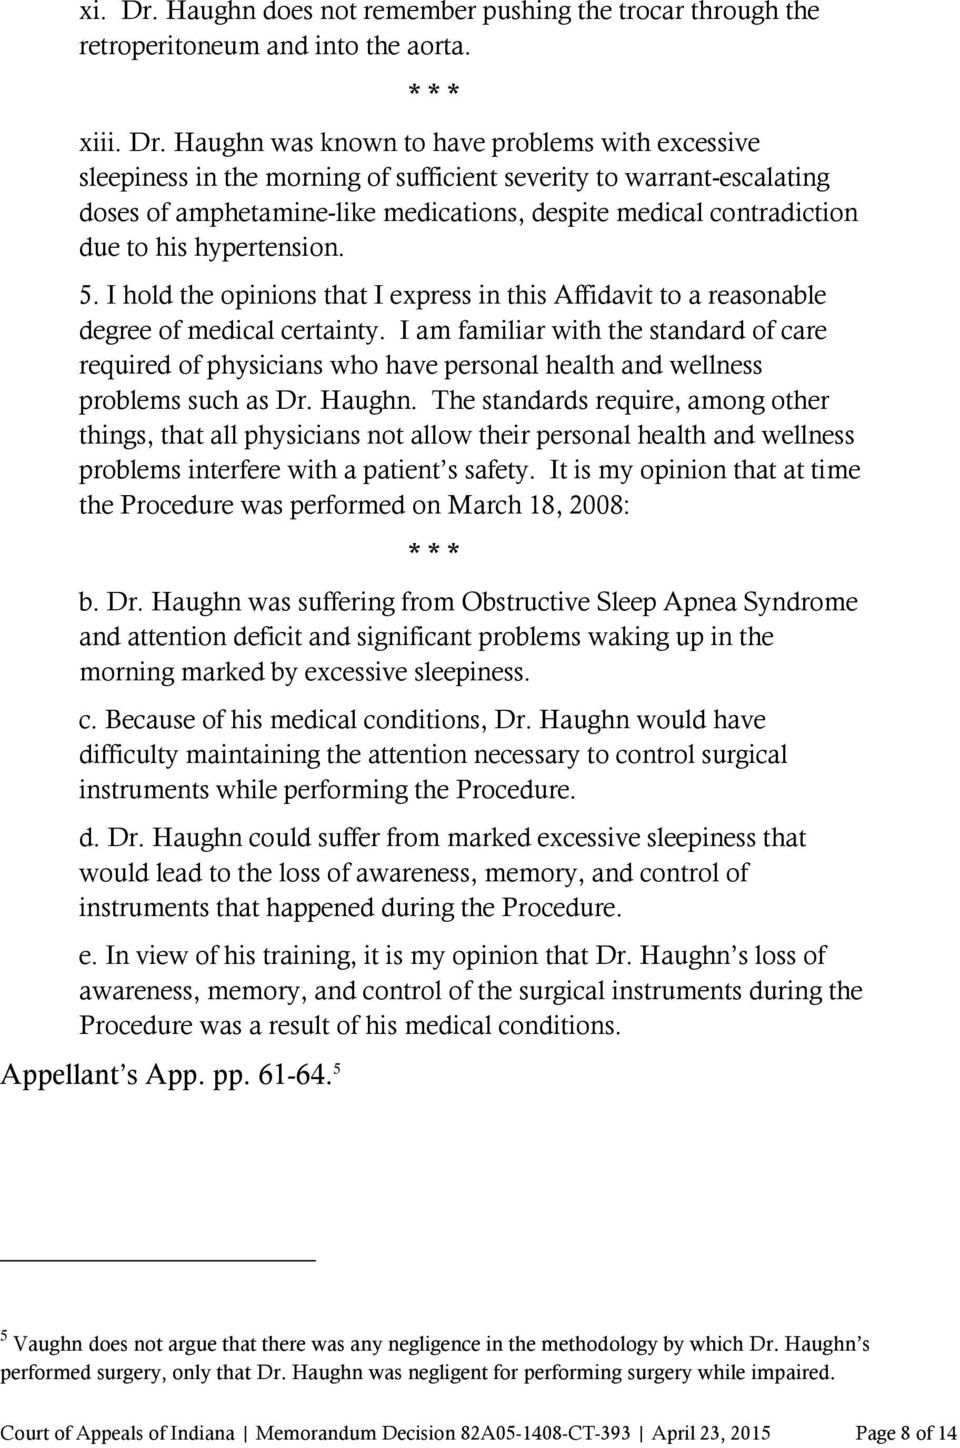 Haughn was known to have problems with excessive sleepiness in the morning of sufficient severity to warrant-escalating doses of amphetamine-like medications, despite medical contradiction due to his